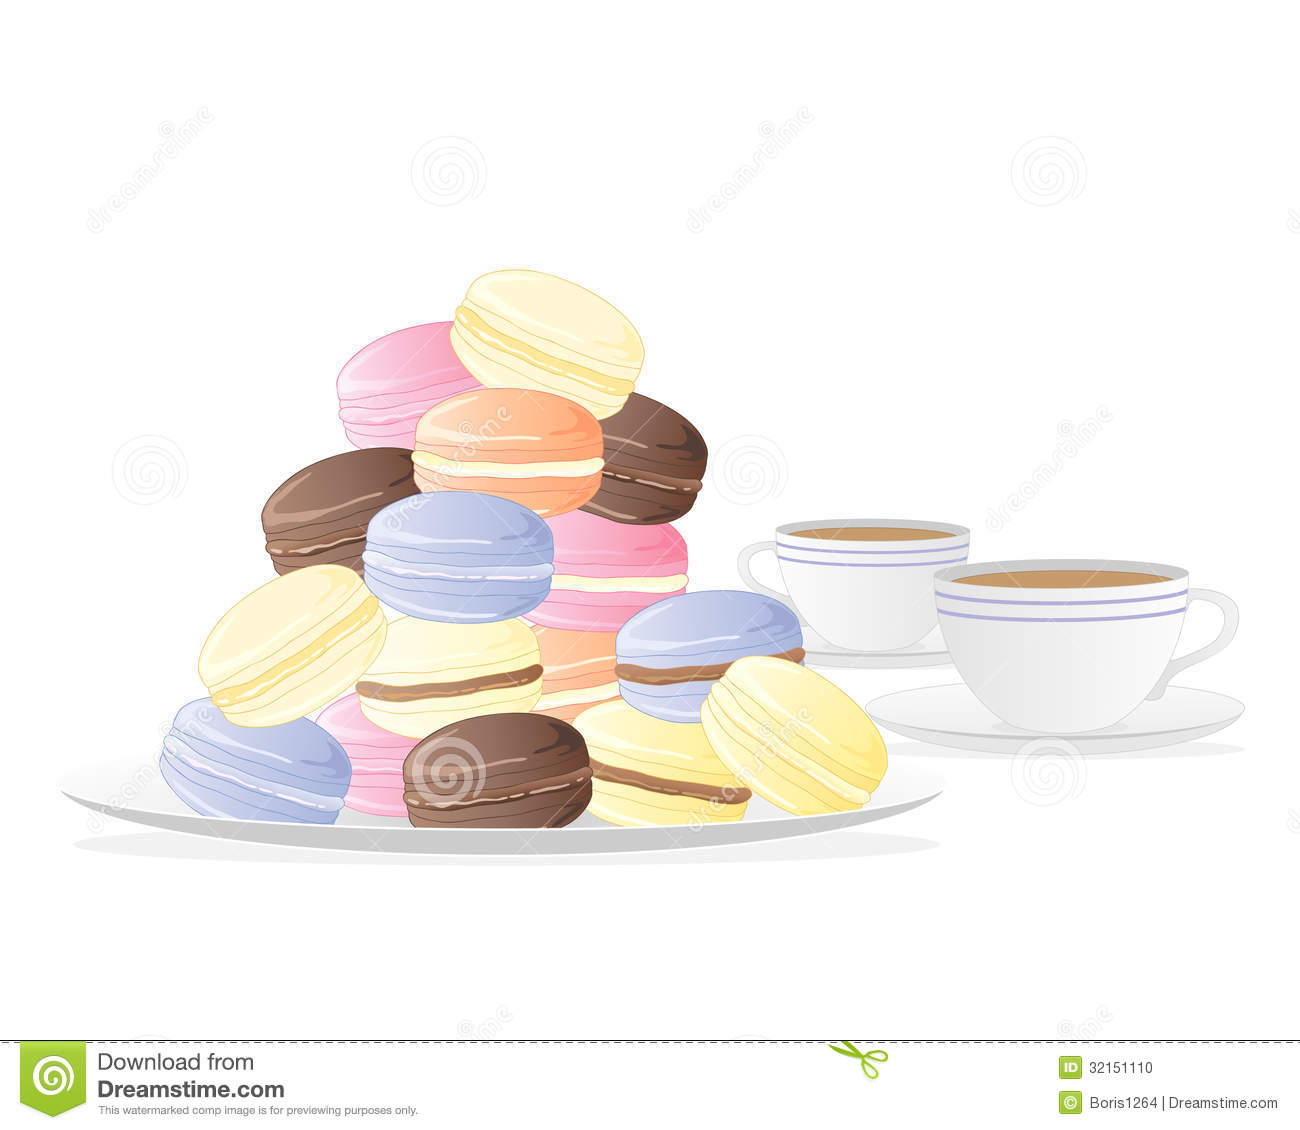 An illustration of a plate of meringue macaroons with two cups of tea